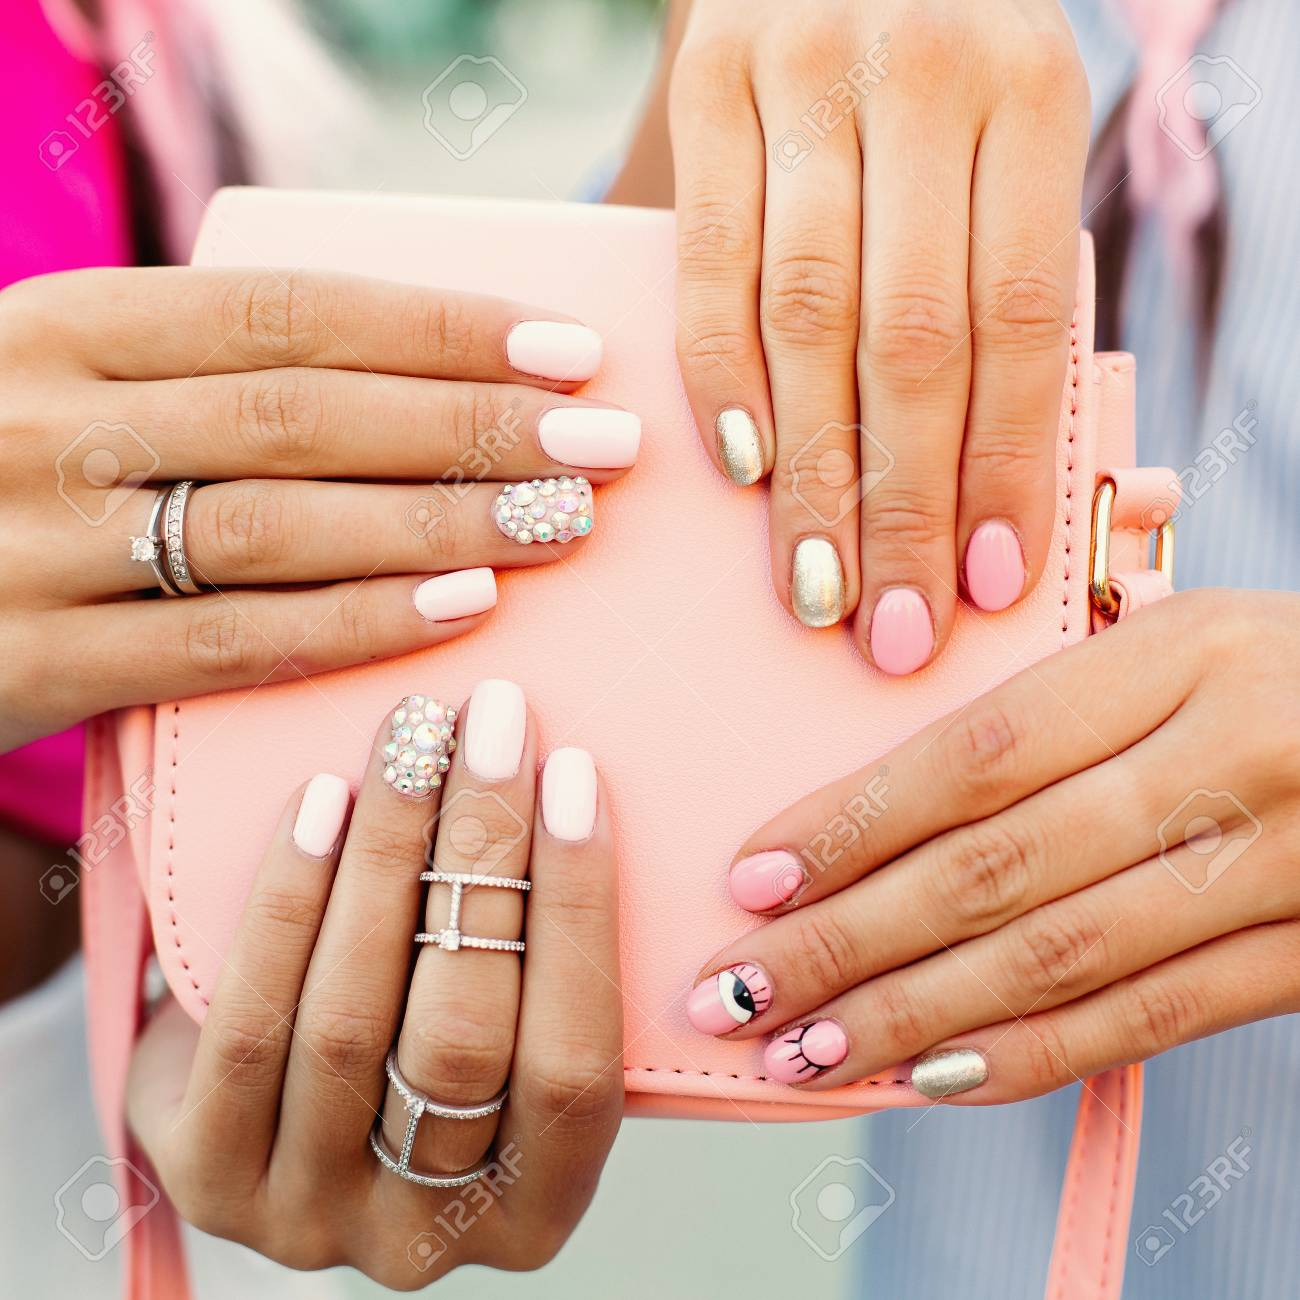 Close up of bag with girls hands with manicure over it. - 120001326